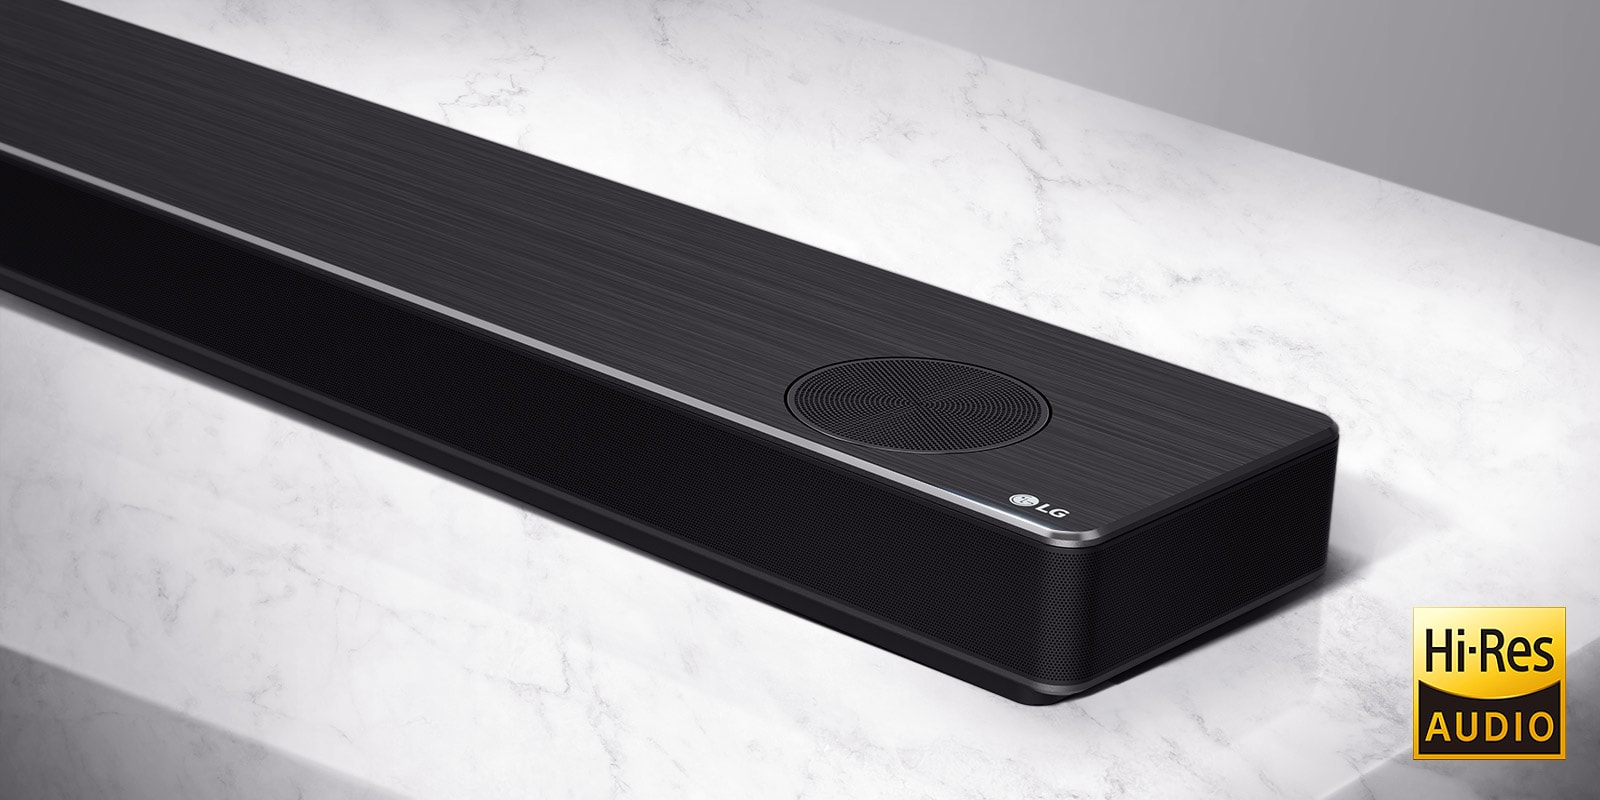 Close-up LG Soundbar right side with LG logo on the bottom right corner of a product.